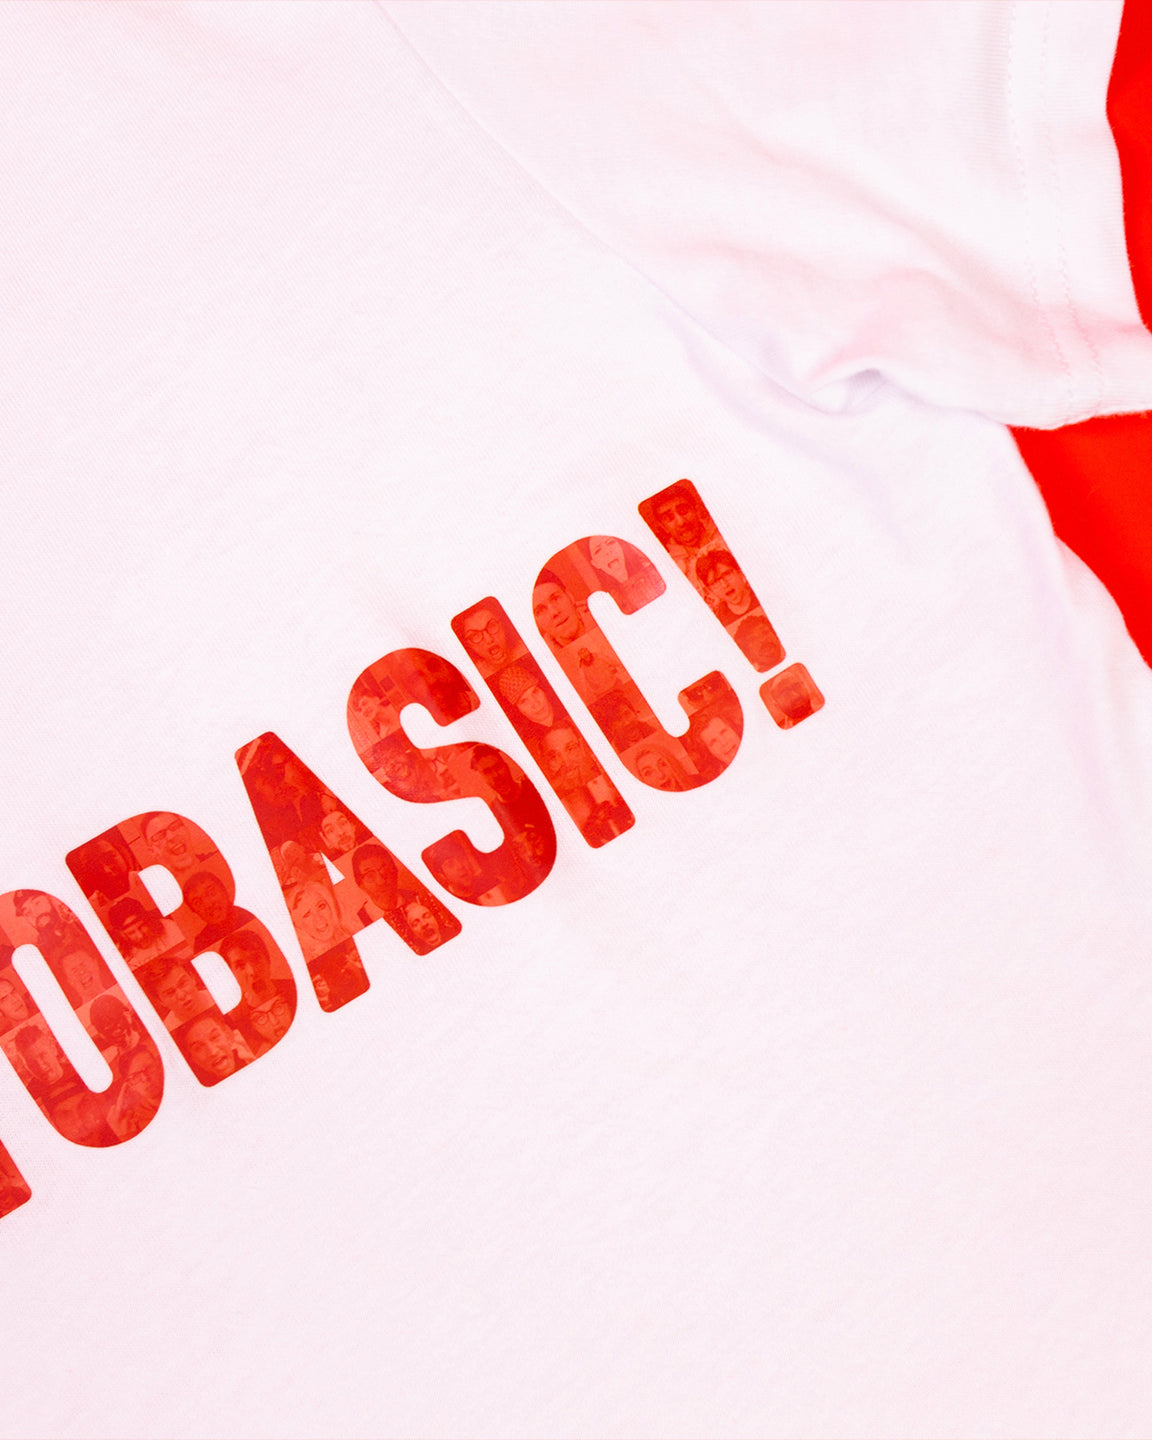 The HowToBasic Tee